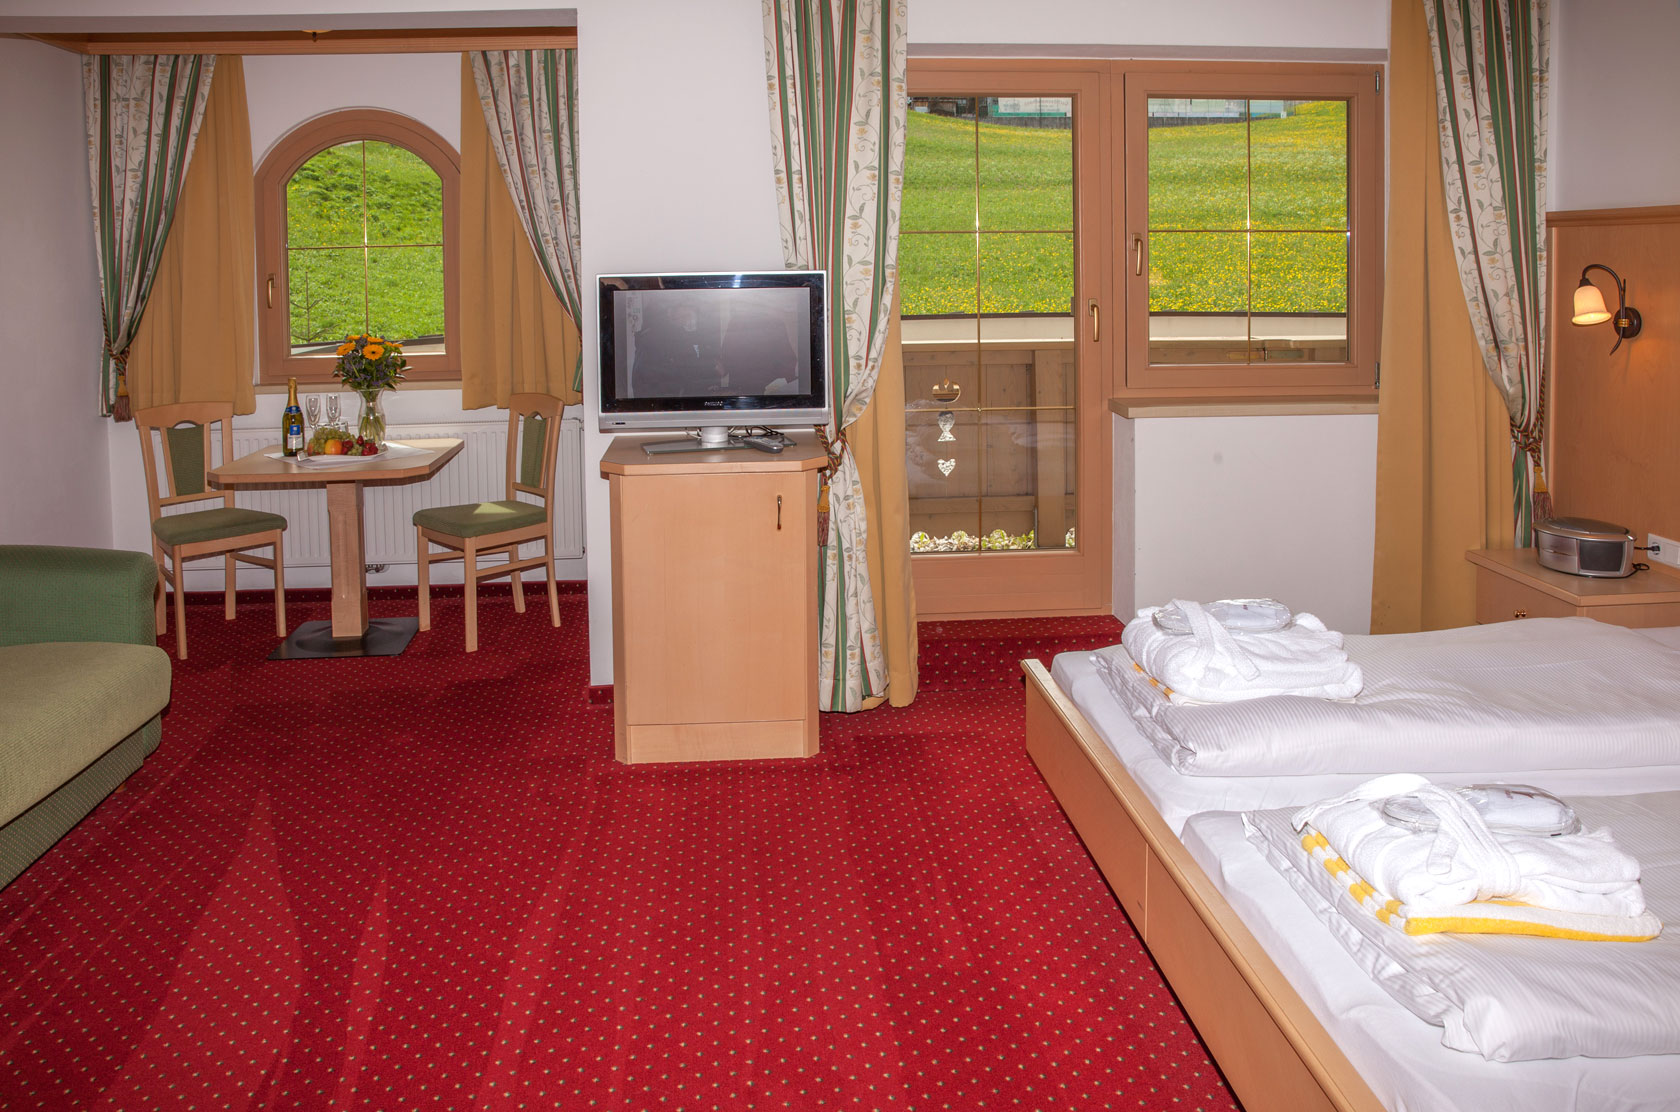 Spacious room in the category maple